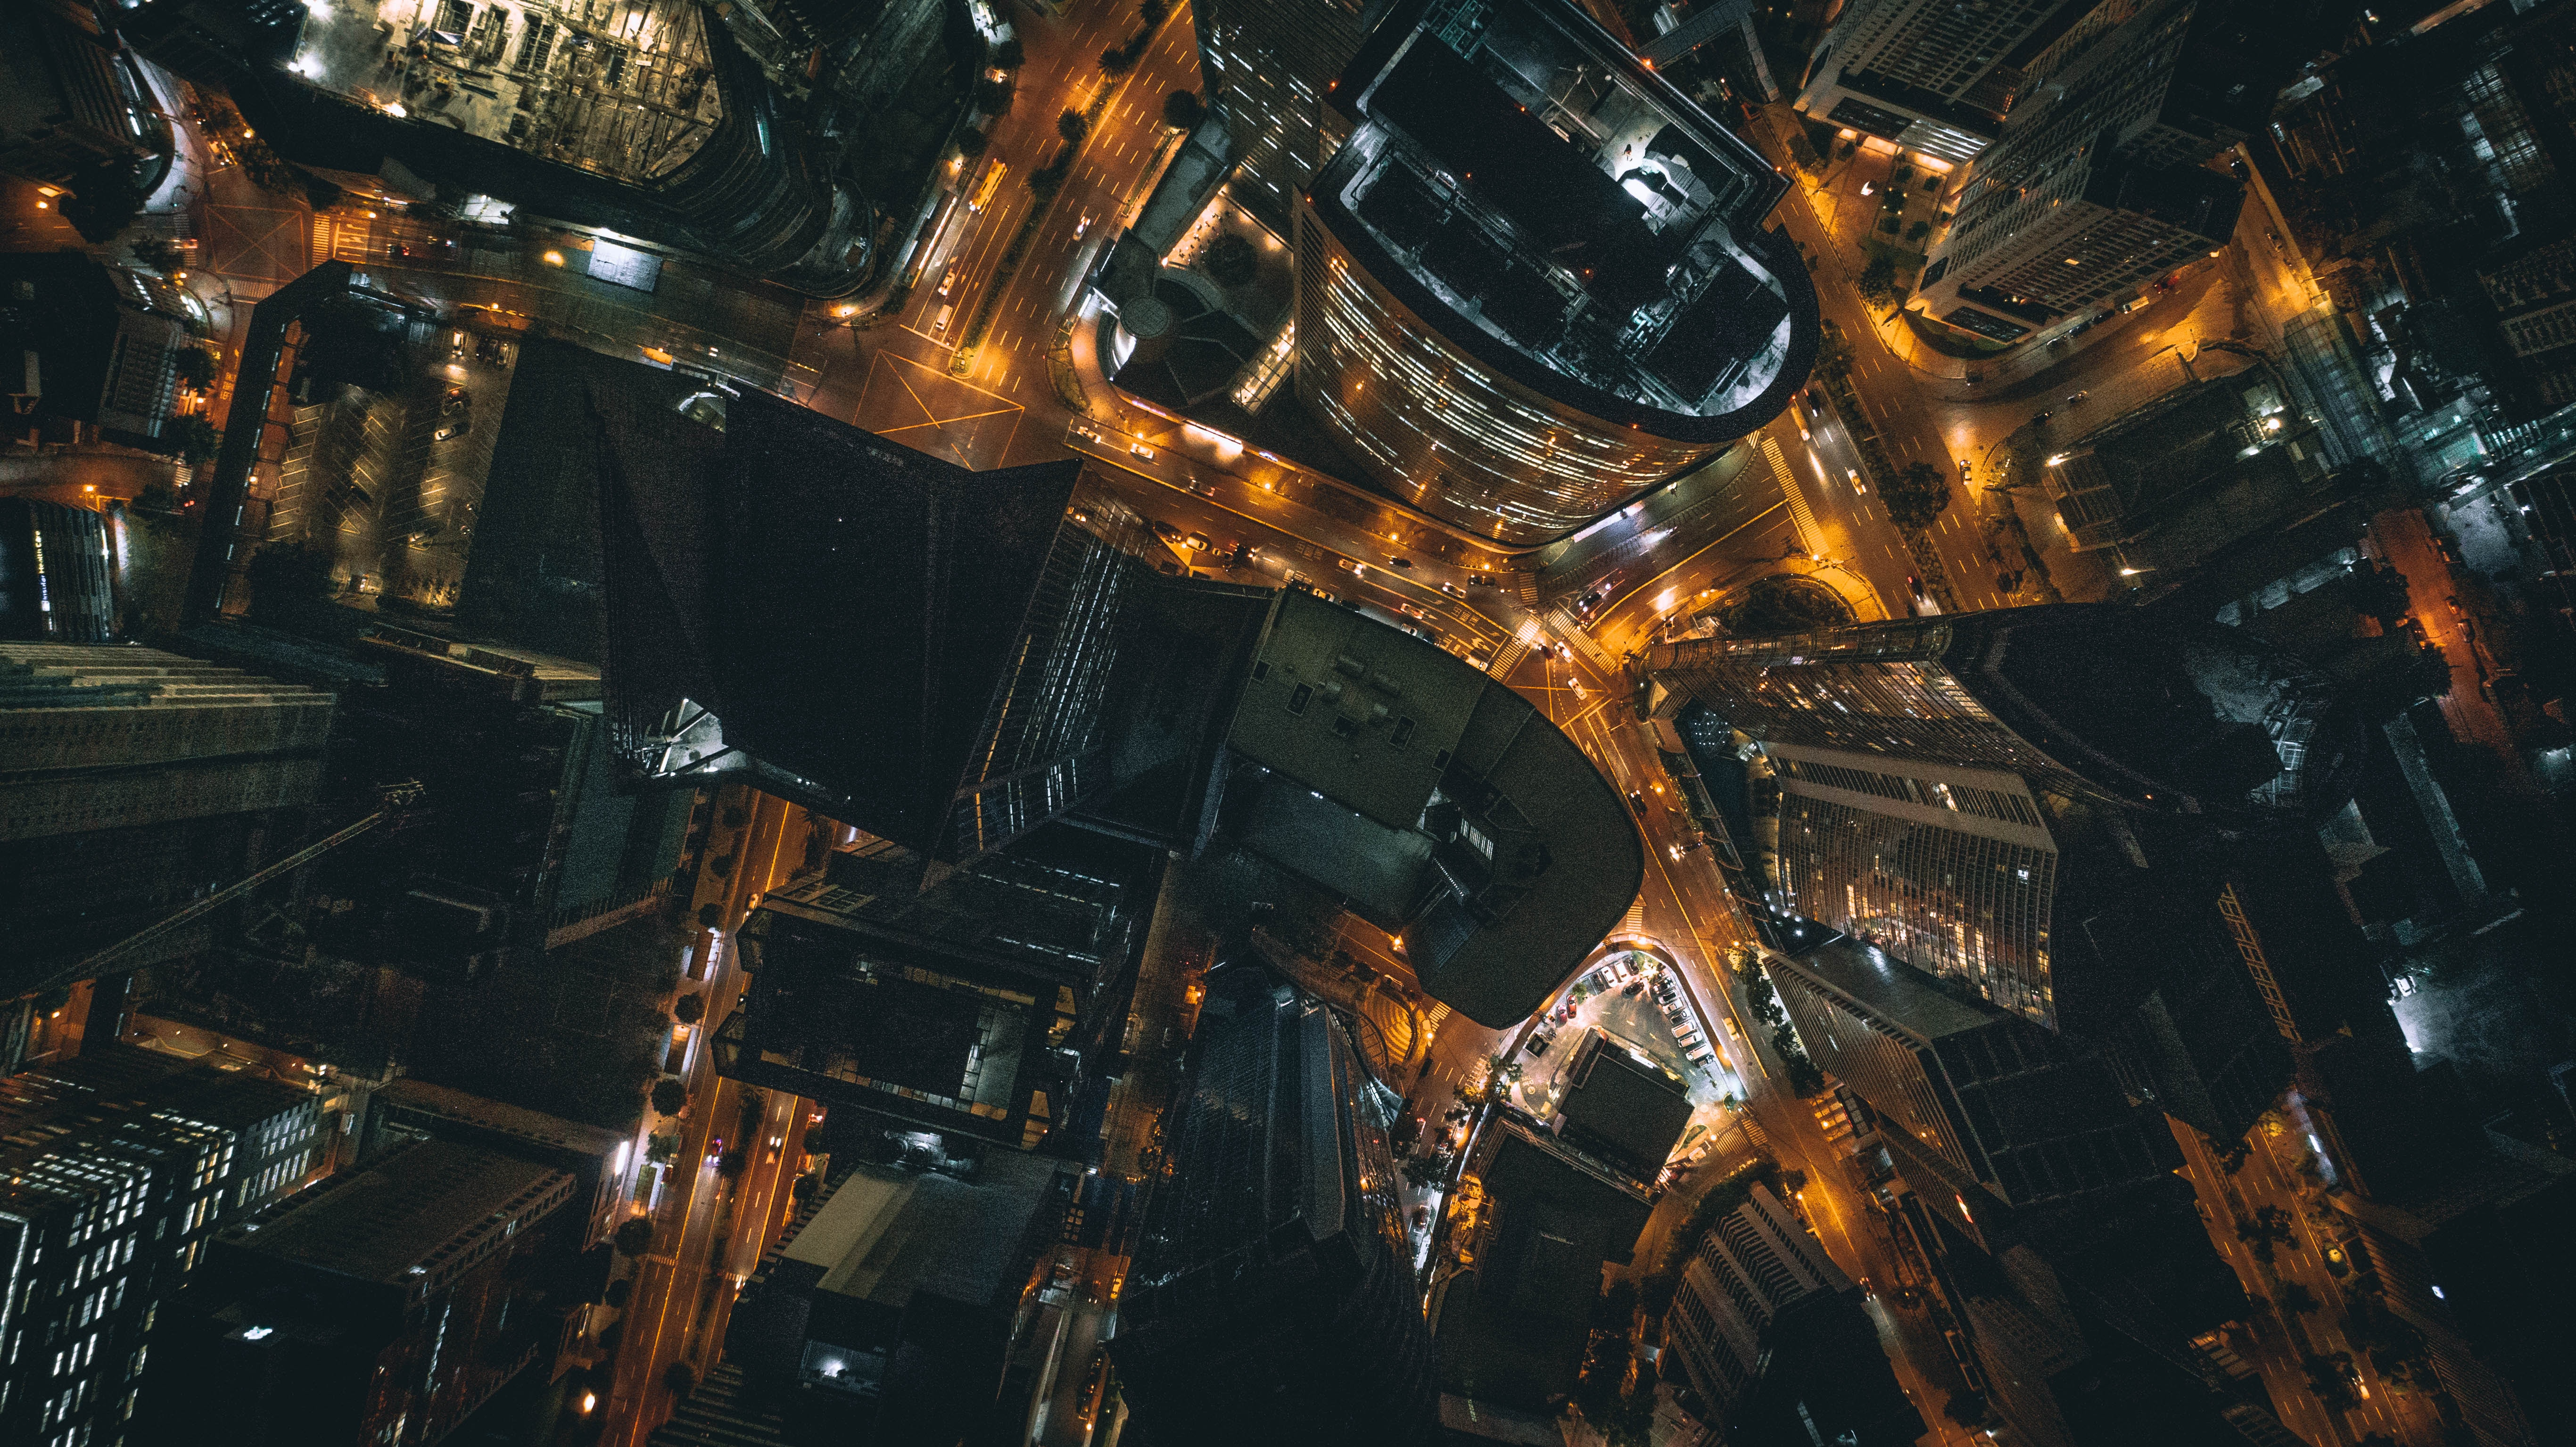 a top view image of the night city in Manila